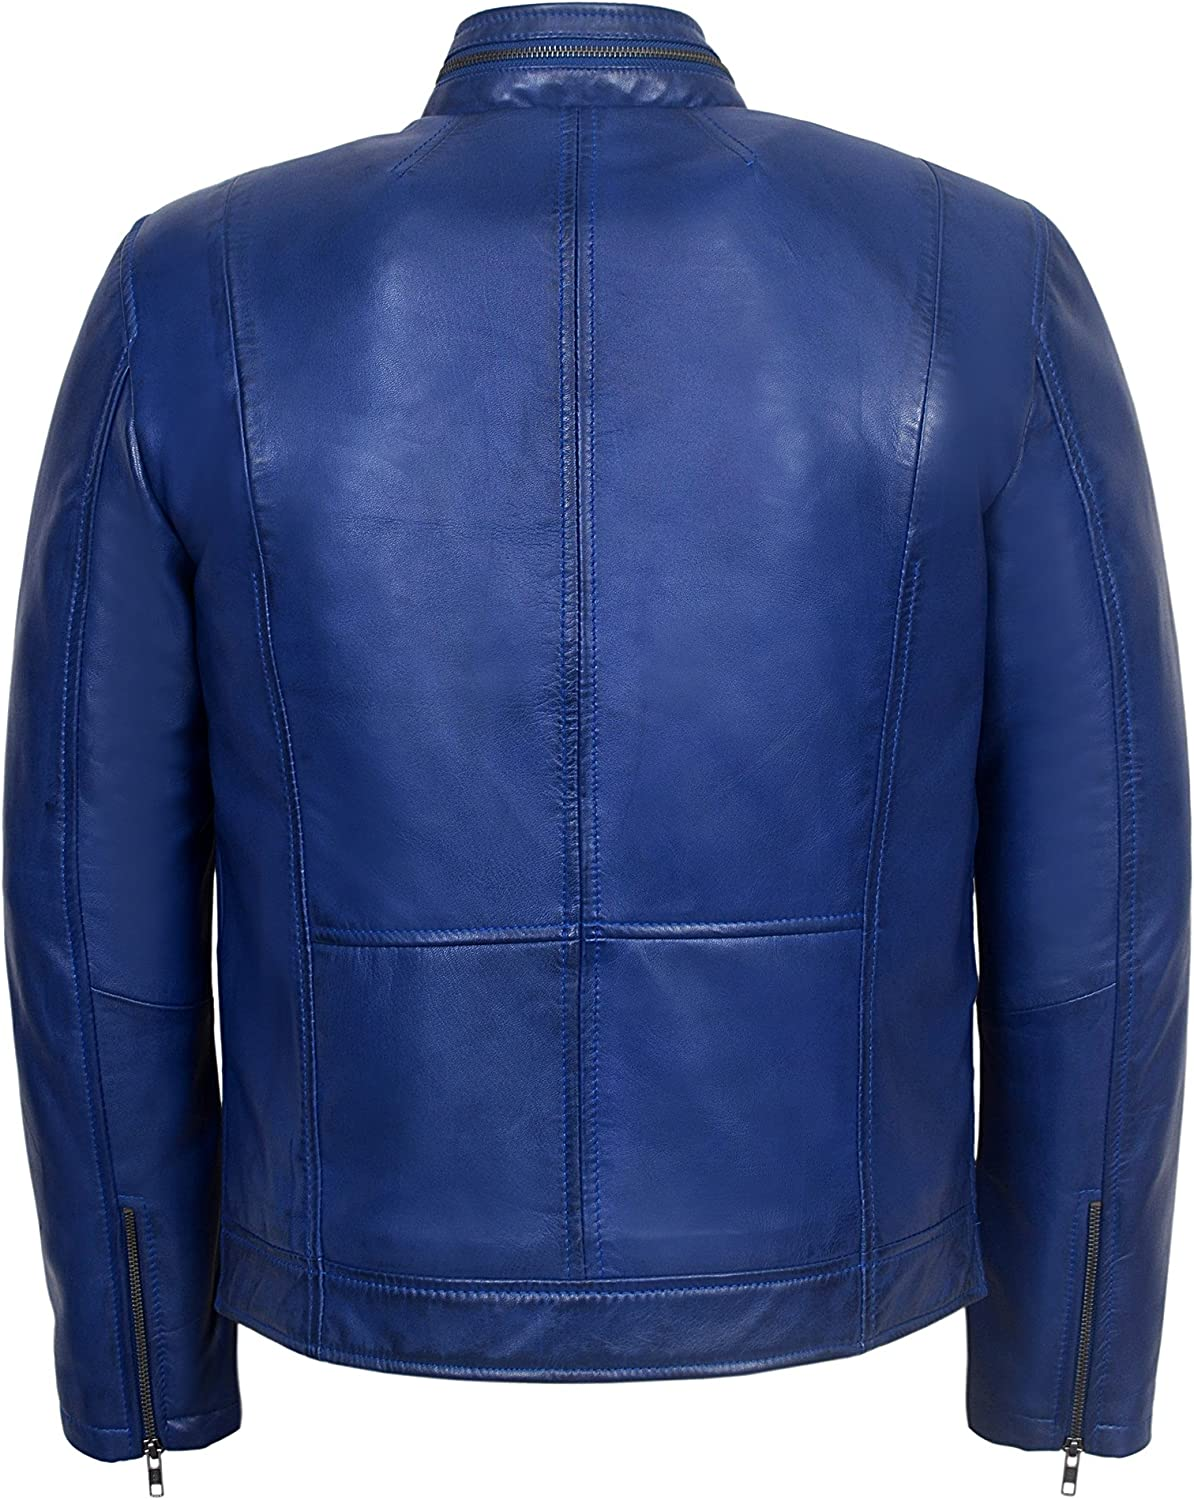 Gunner Mens Blue Fashion Style Biker Motorcycle Real Italy Napa Leather Jacket 7861